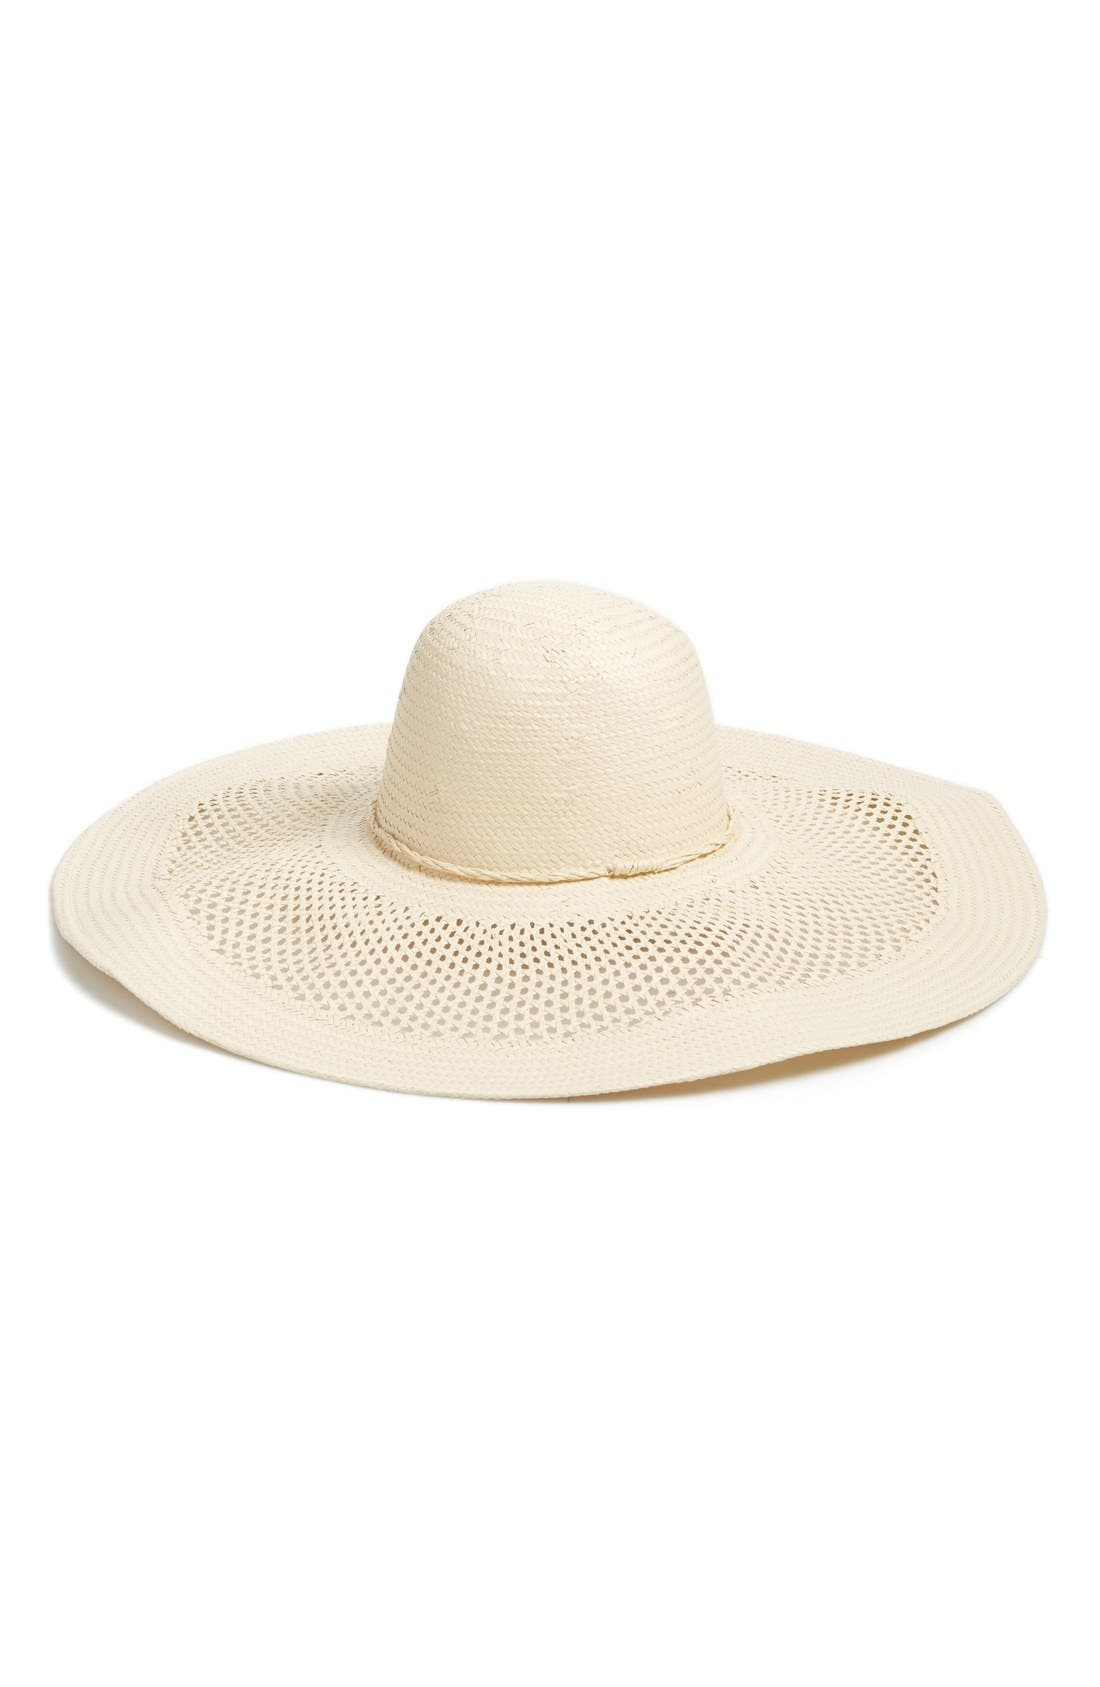 Open Weave Floppy Straw Hat,                             Main thumbnail 1, color,                             Ivory Vanilla